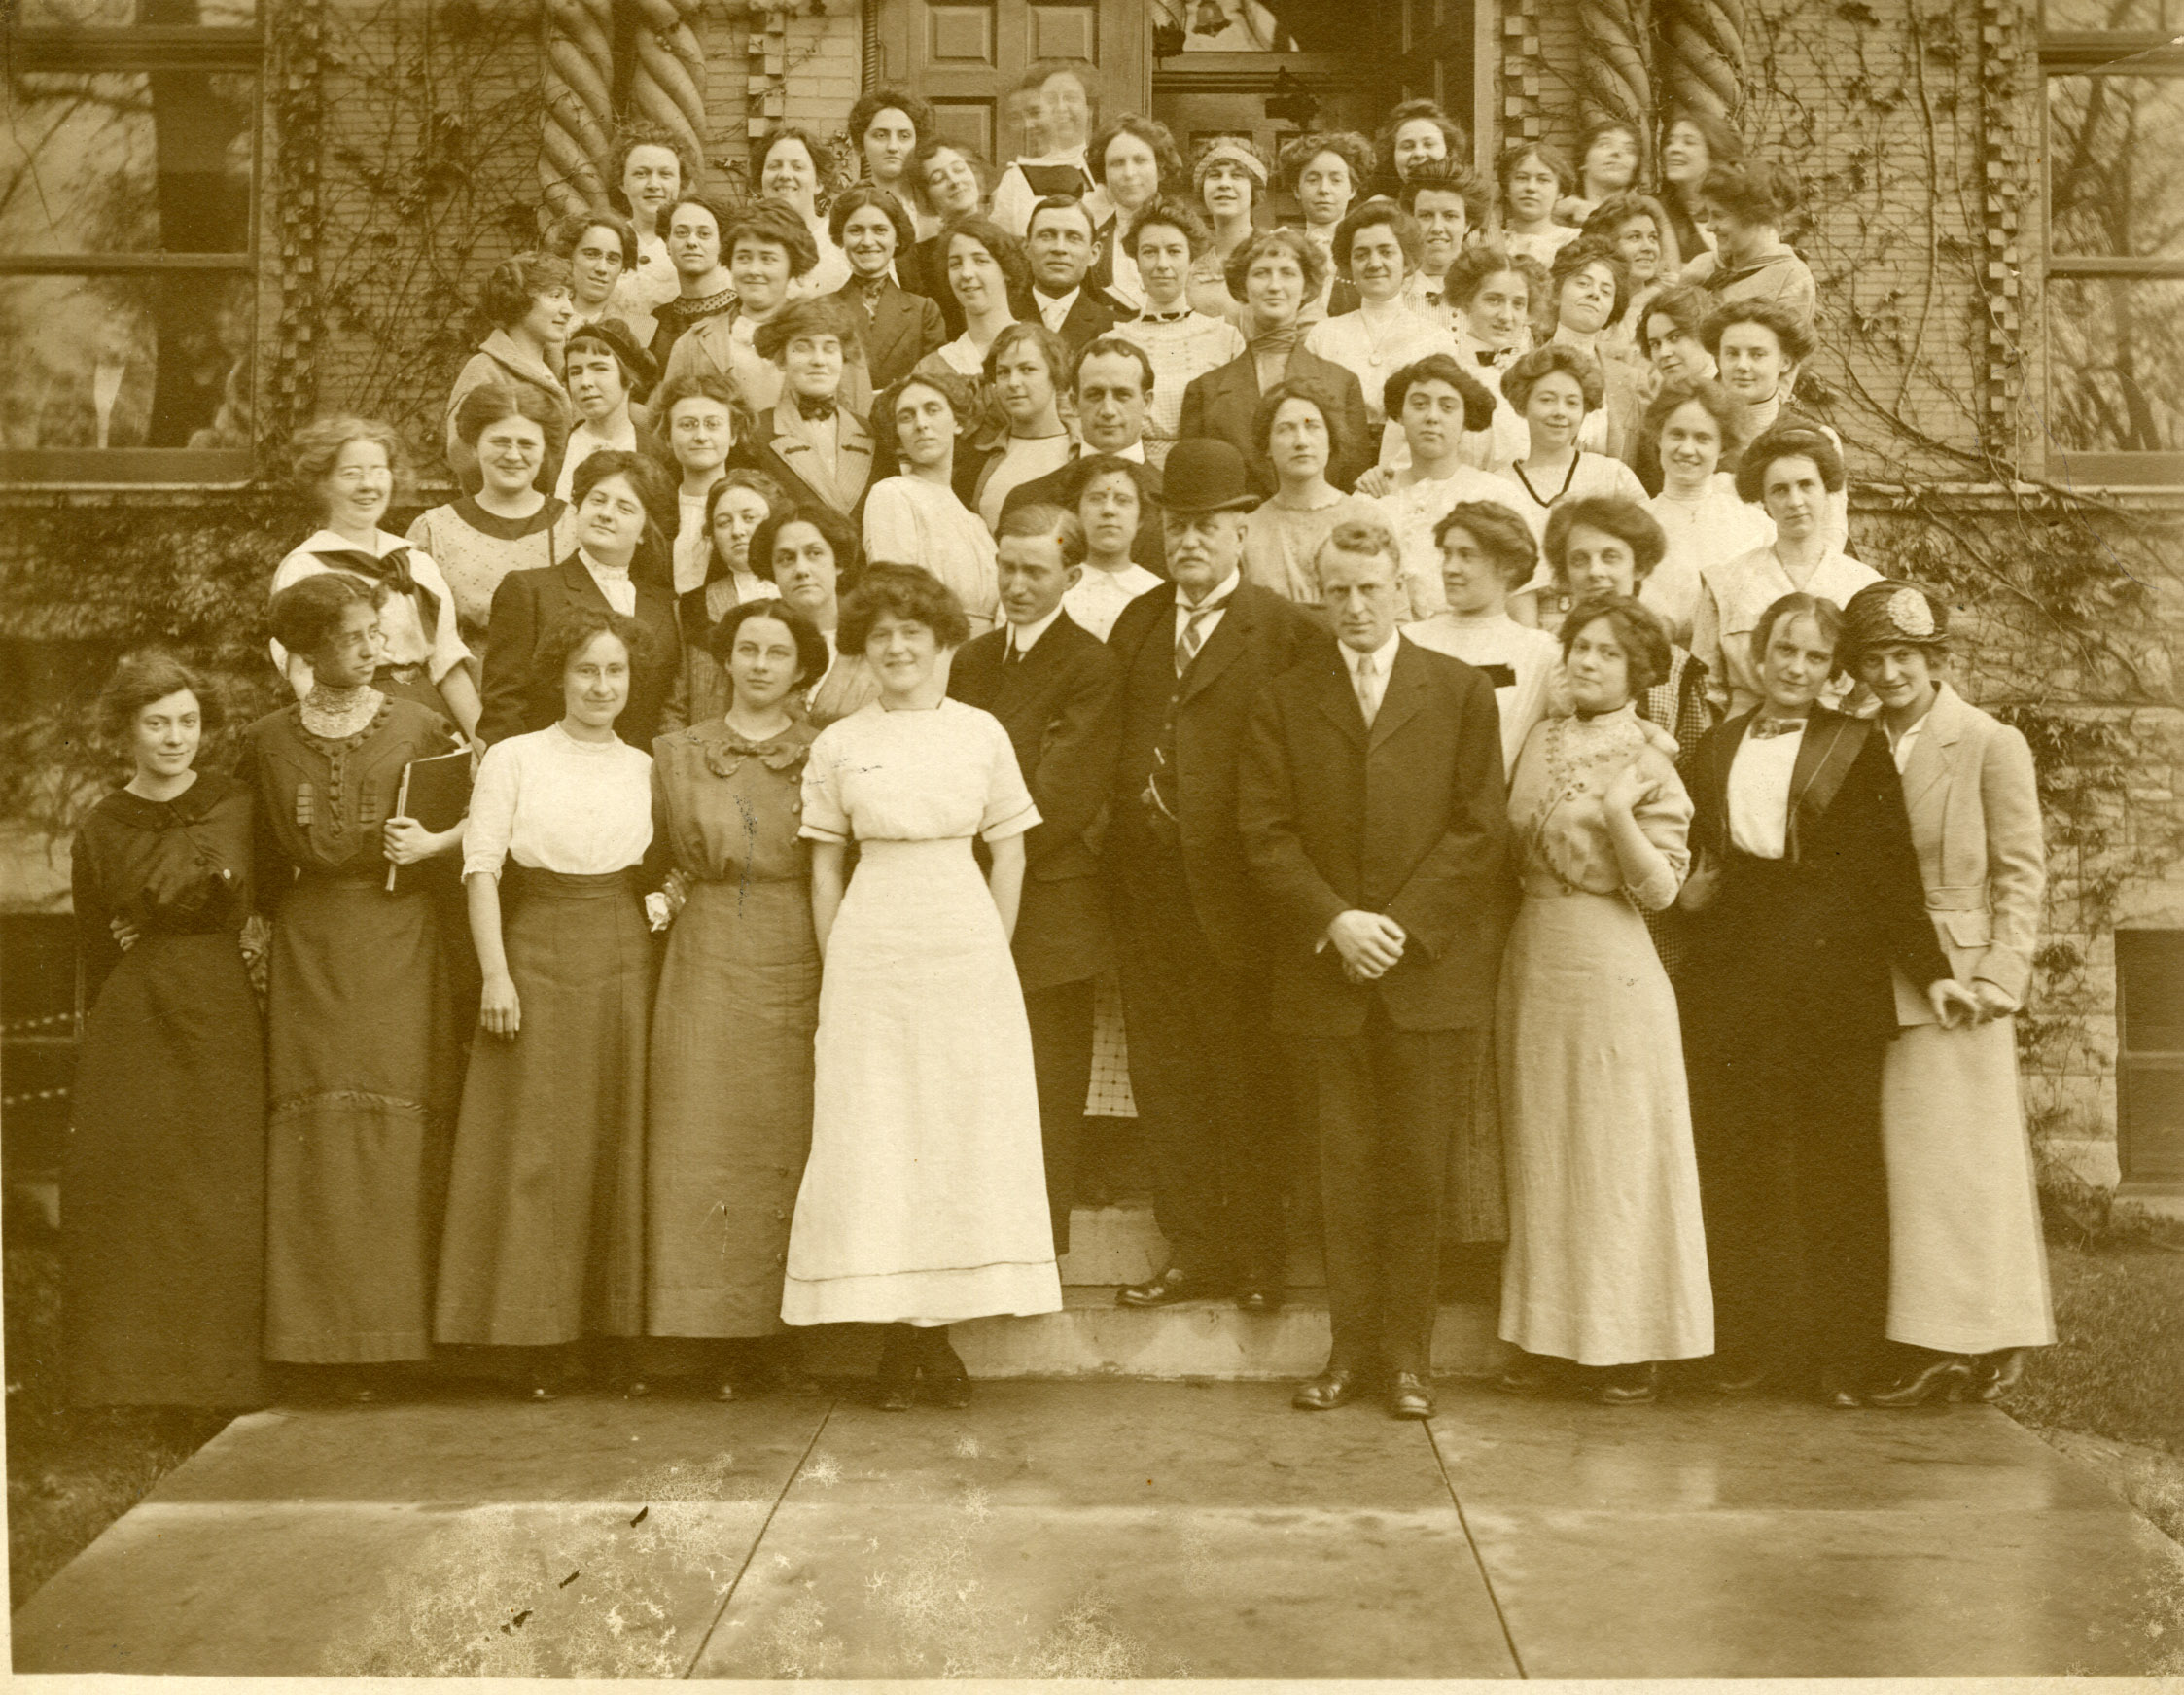 School of Oratory faculty & students, 1912